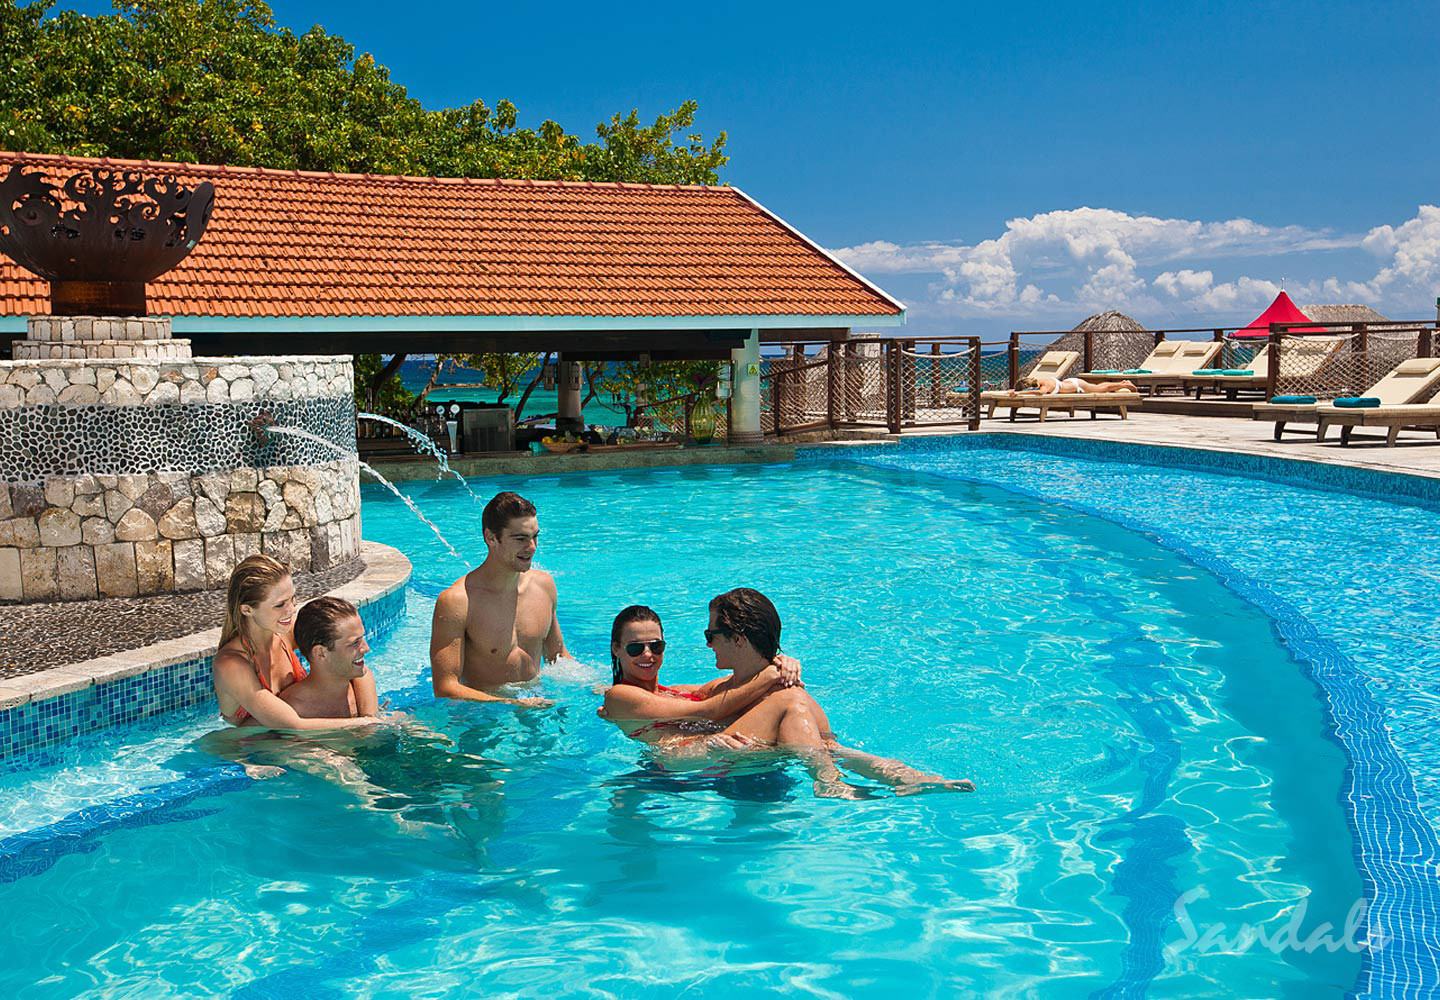 Travel Agency All-Inclusive Resort Sandals Ochi 009